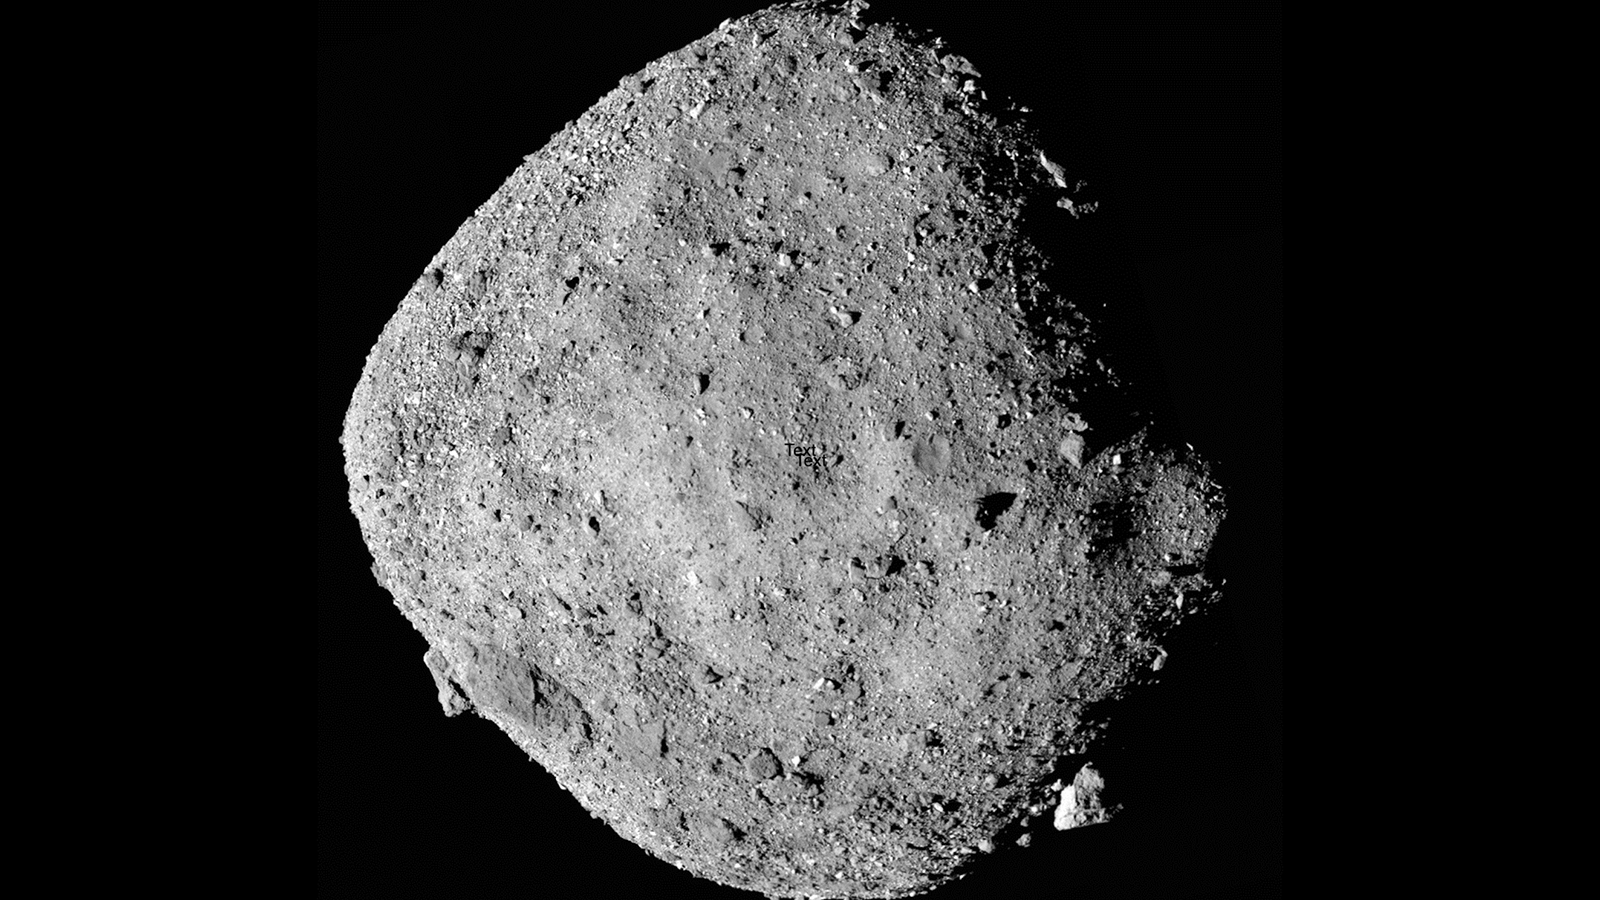 Asteroid Bennu now has a greater chance of hitting Earth through 2300, but still slim